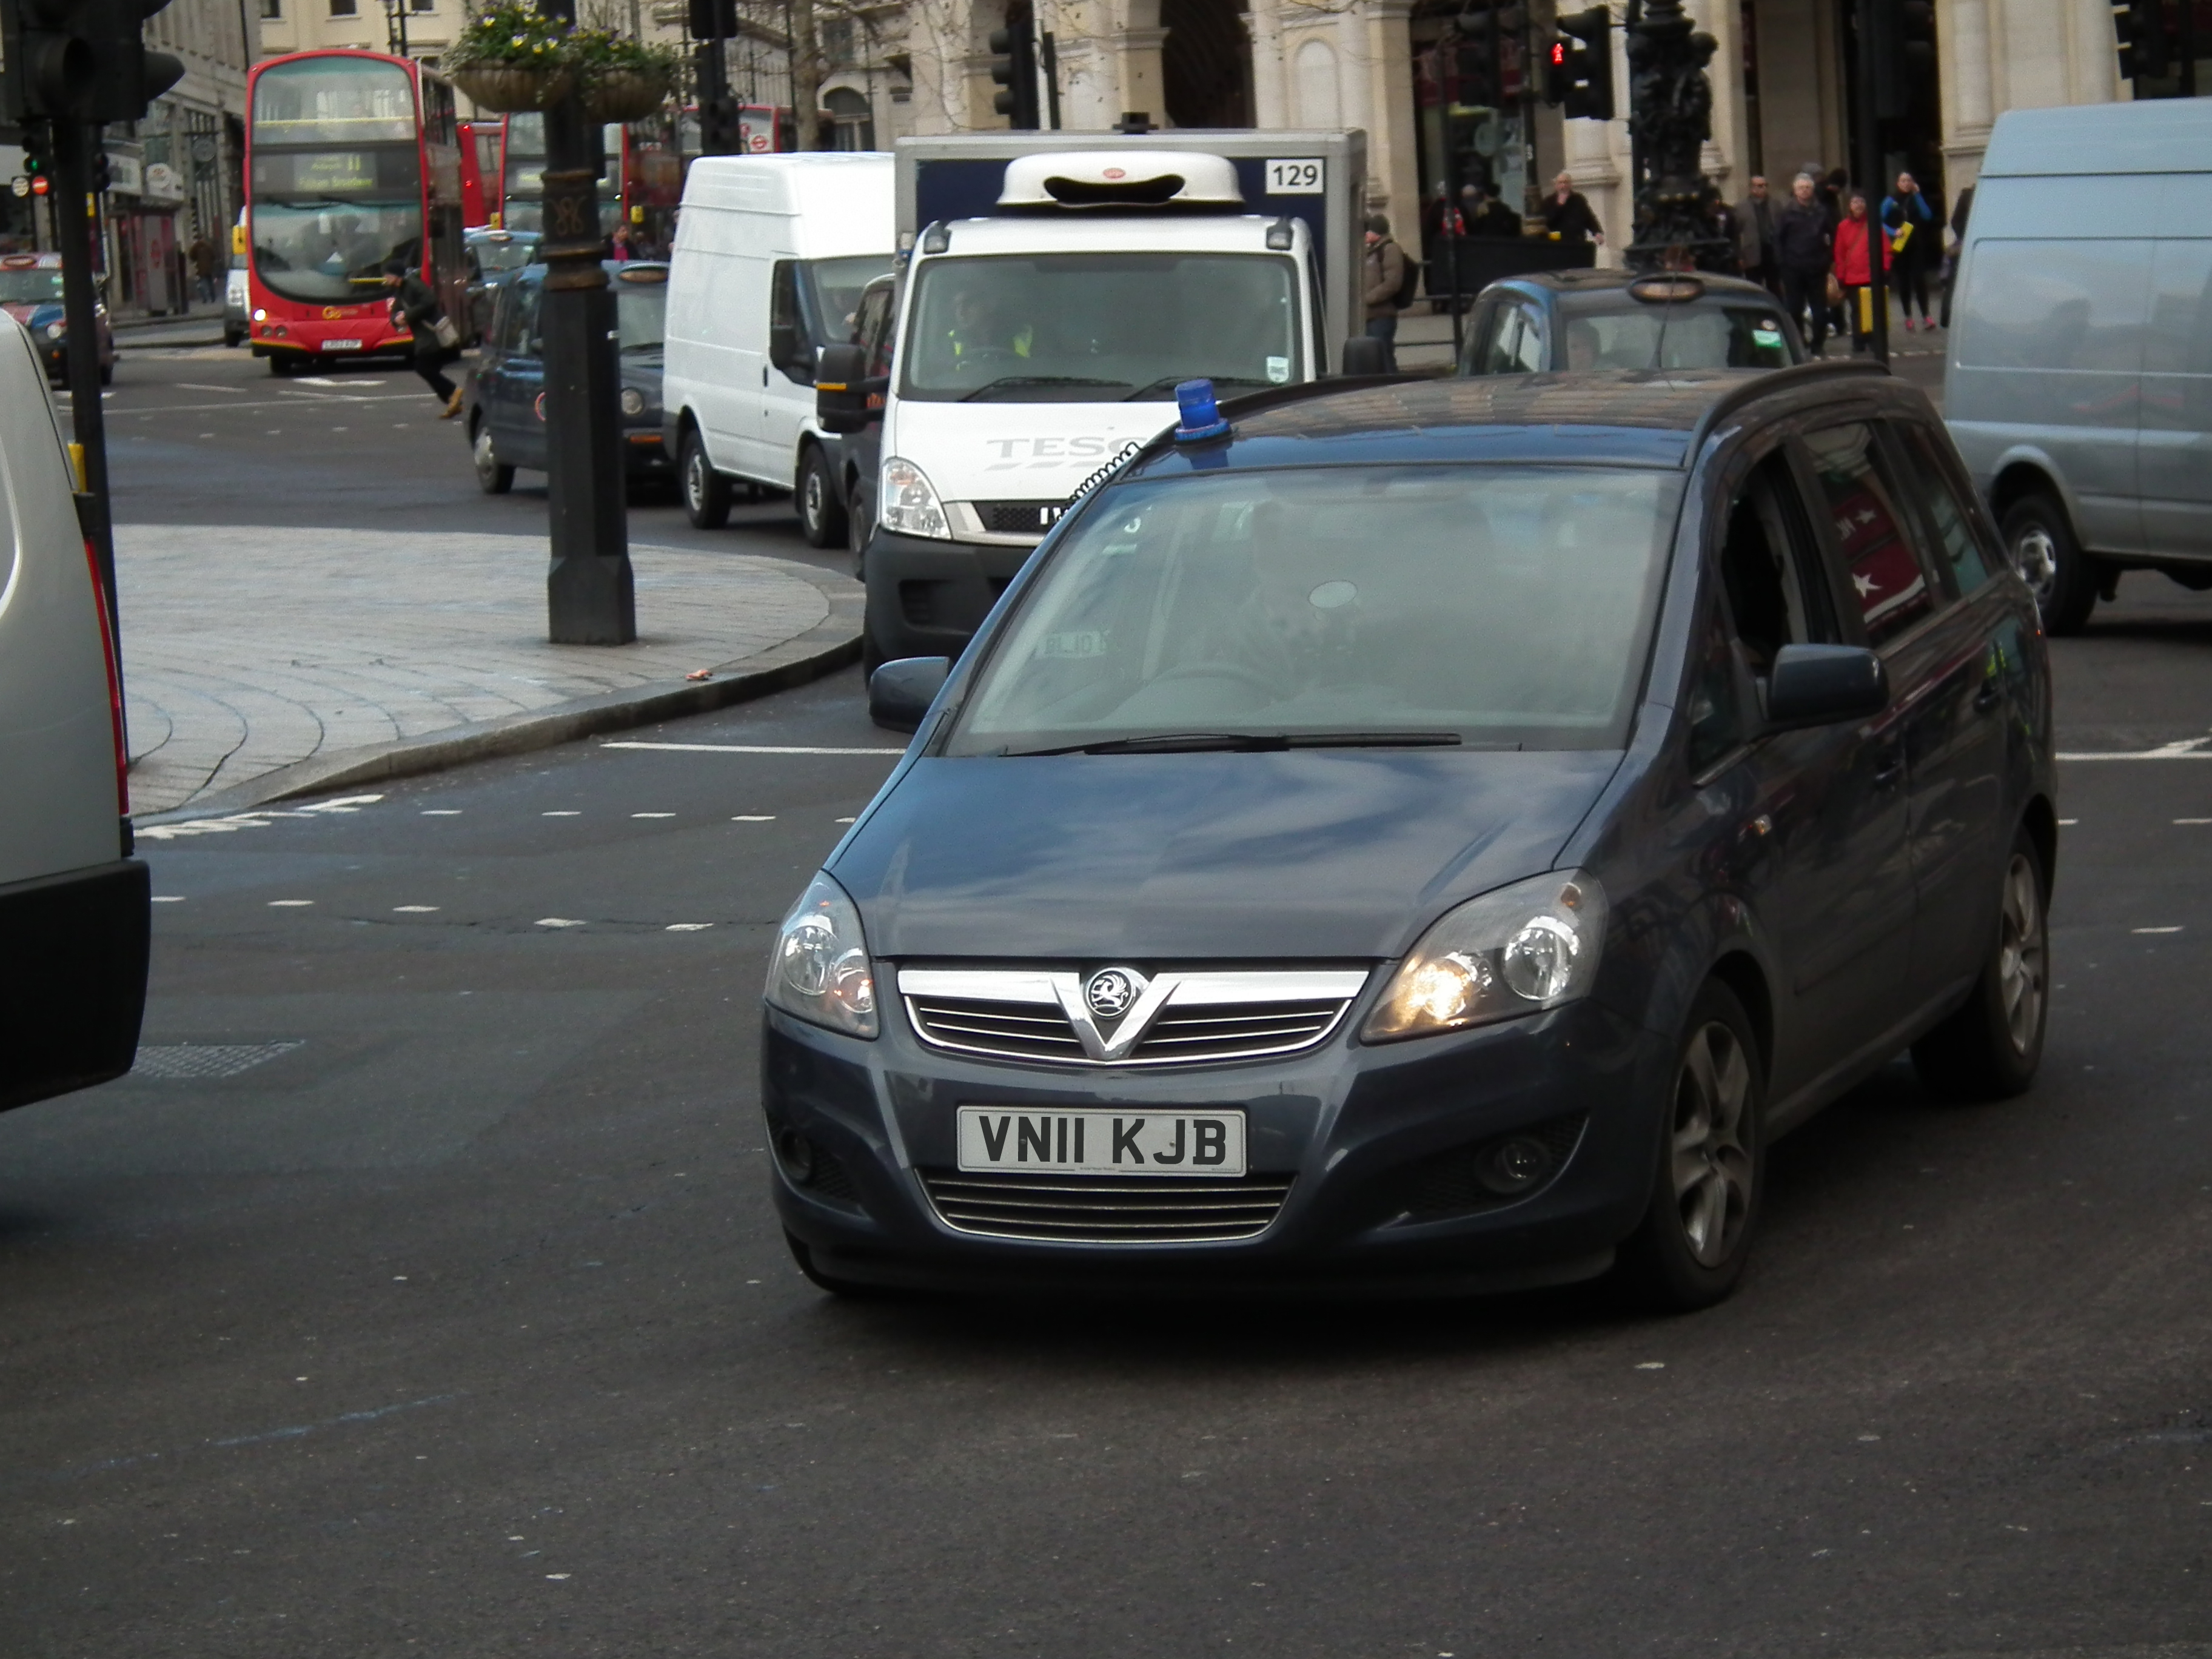 Unmarked Met Police Vauxhall Zafira | Flickr - Photo Sharing!